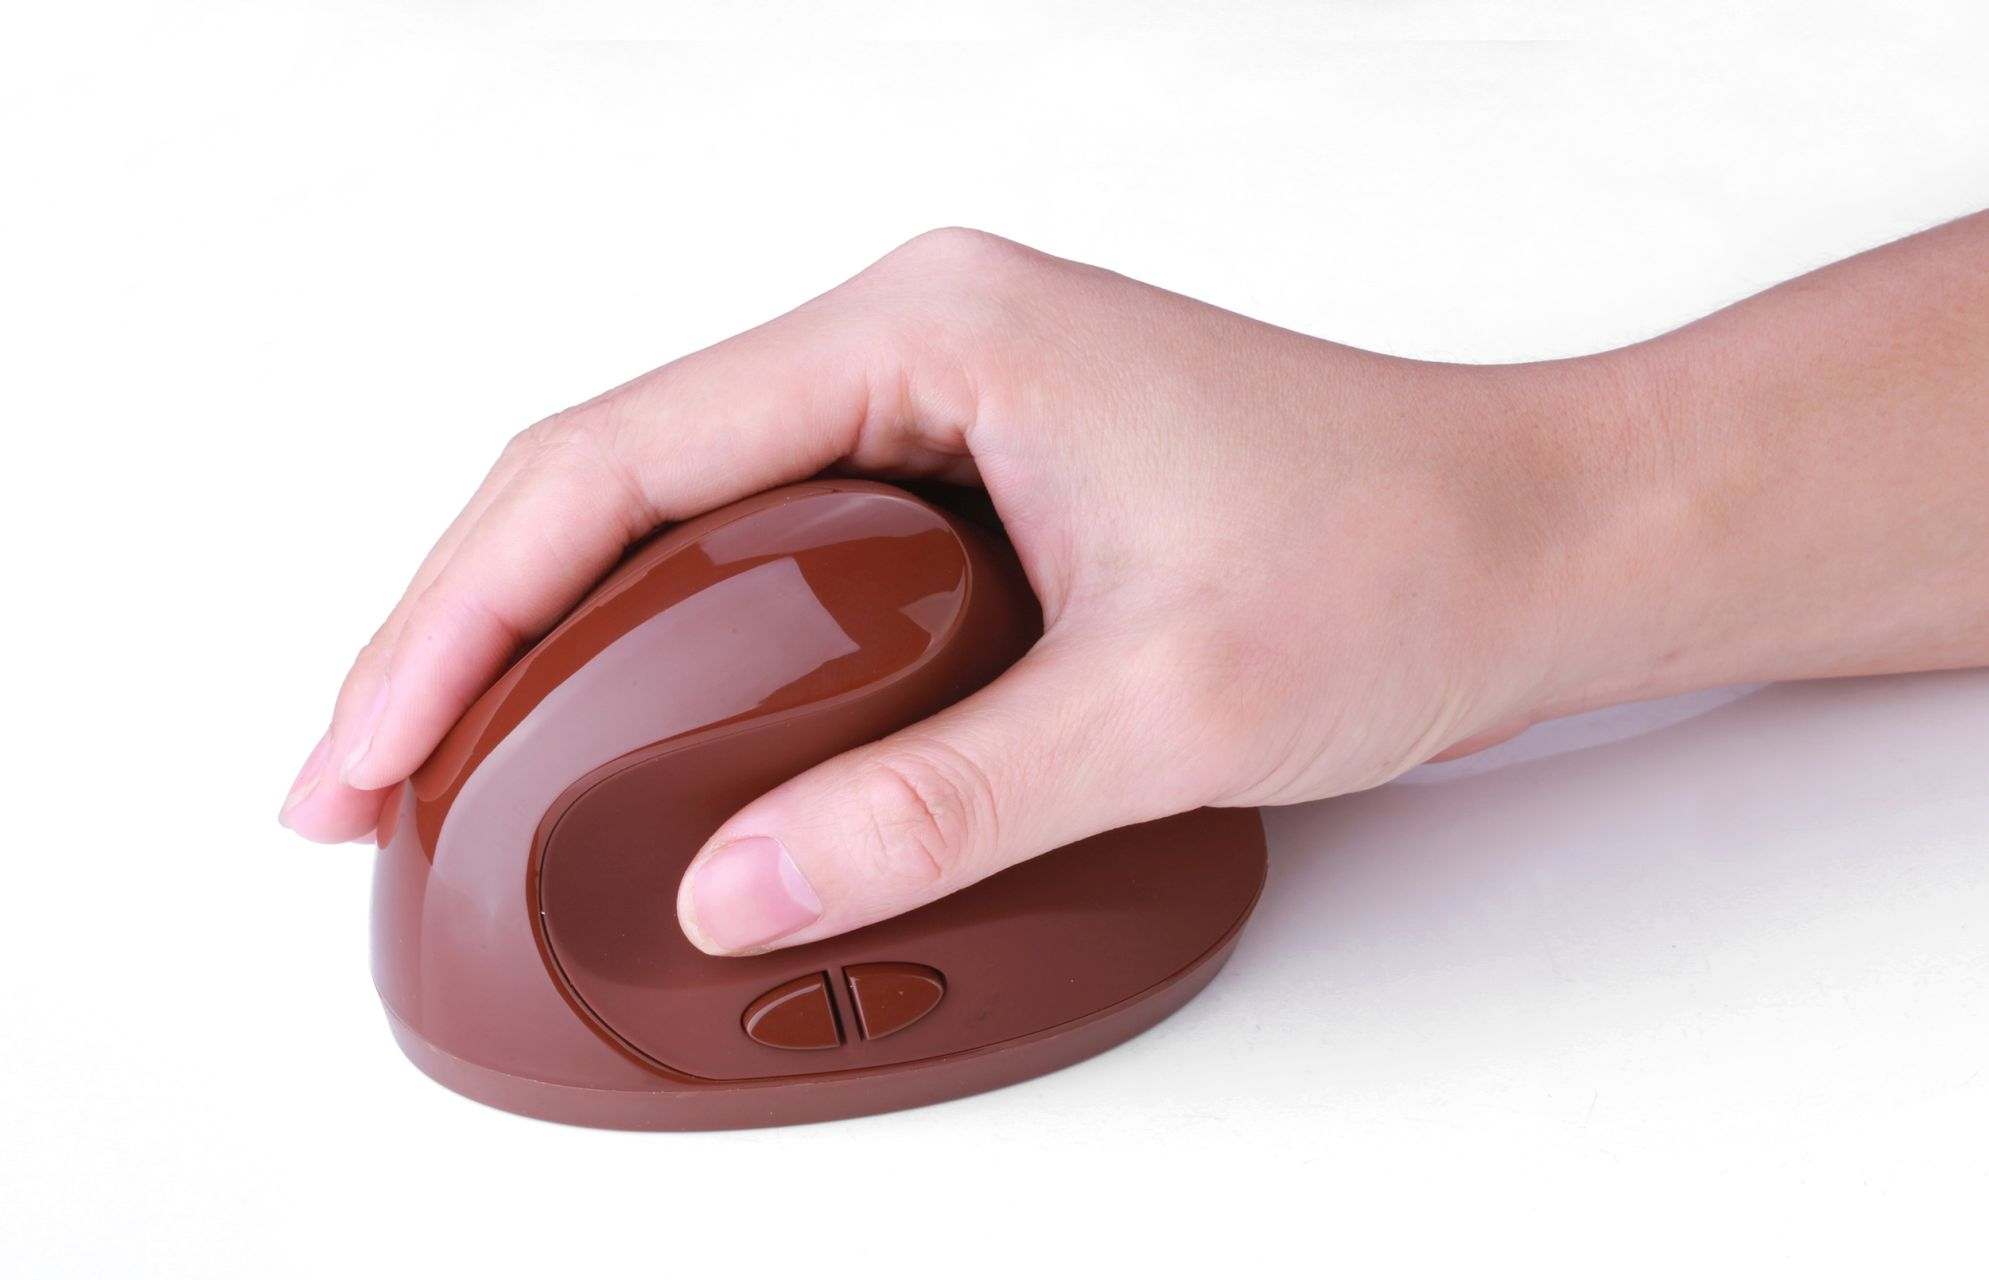 comodus medical rf mouse brown with hand